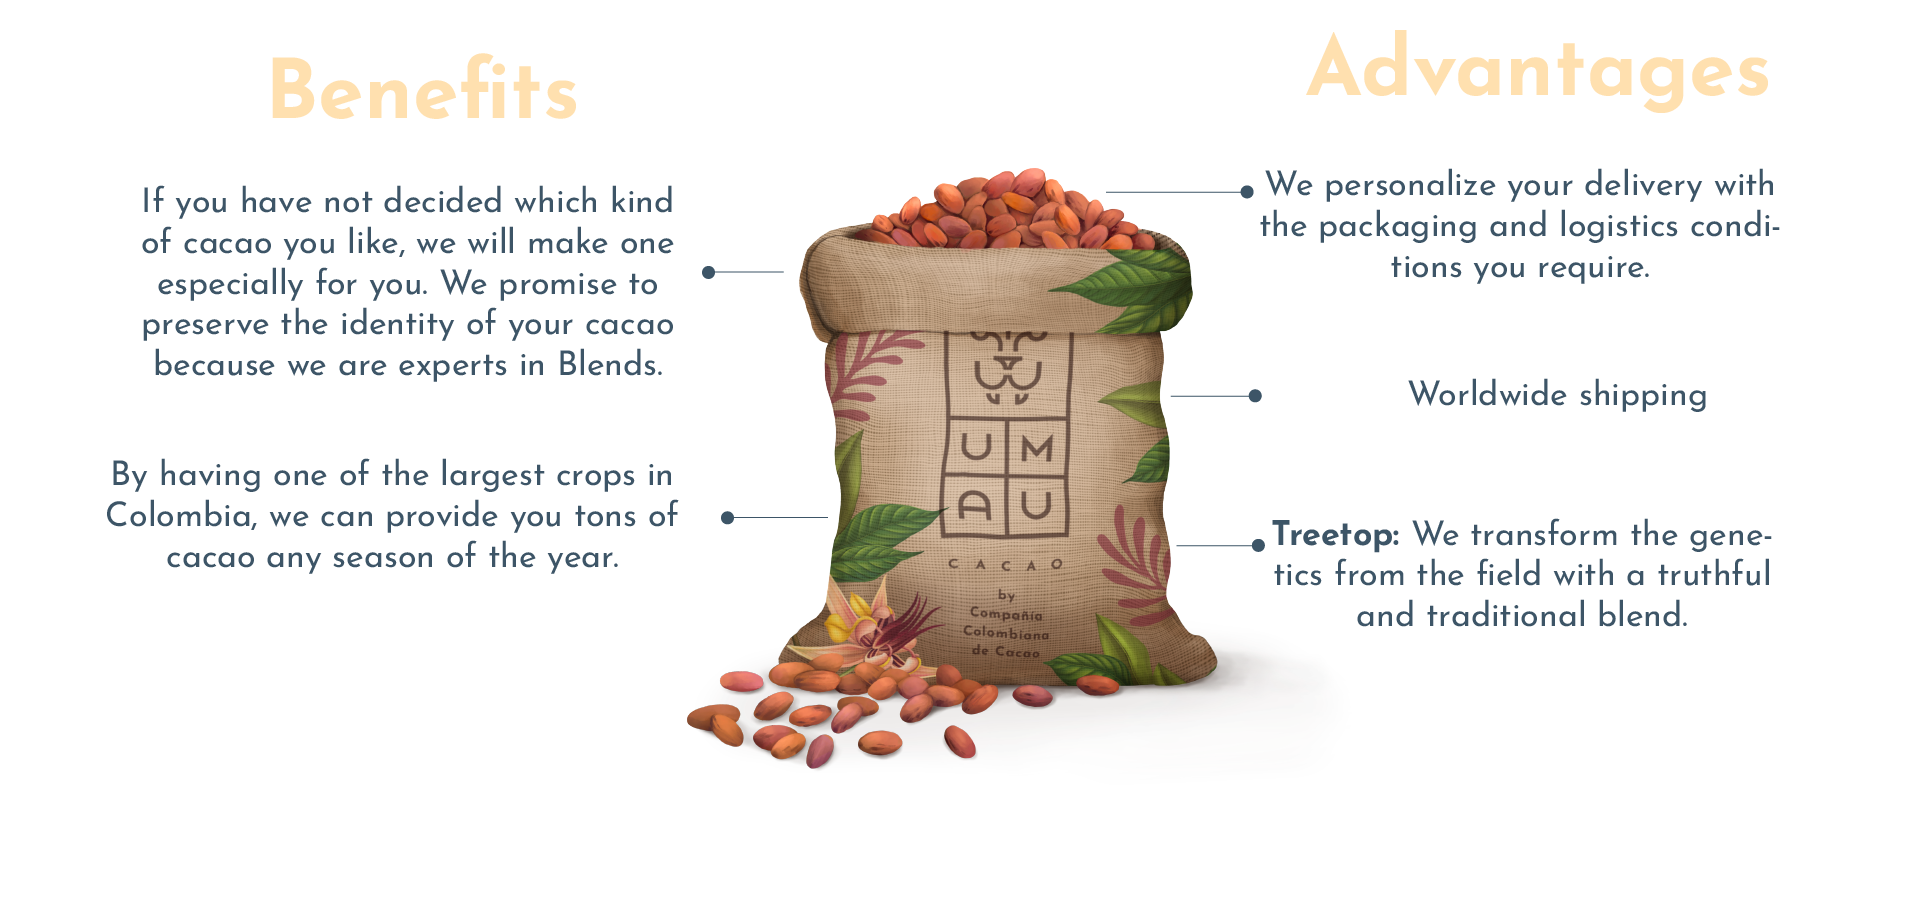 Benefits of UMAU Cacao